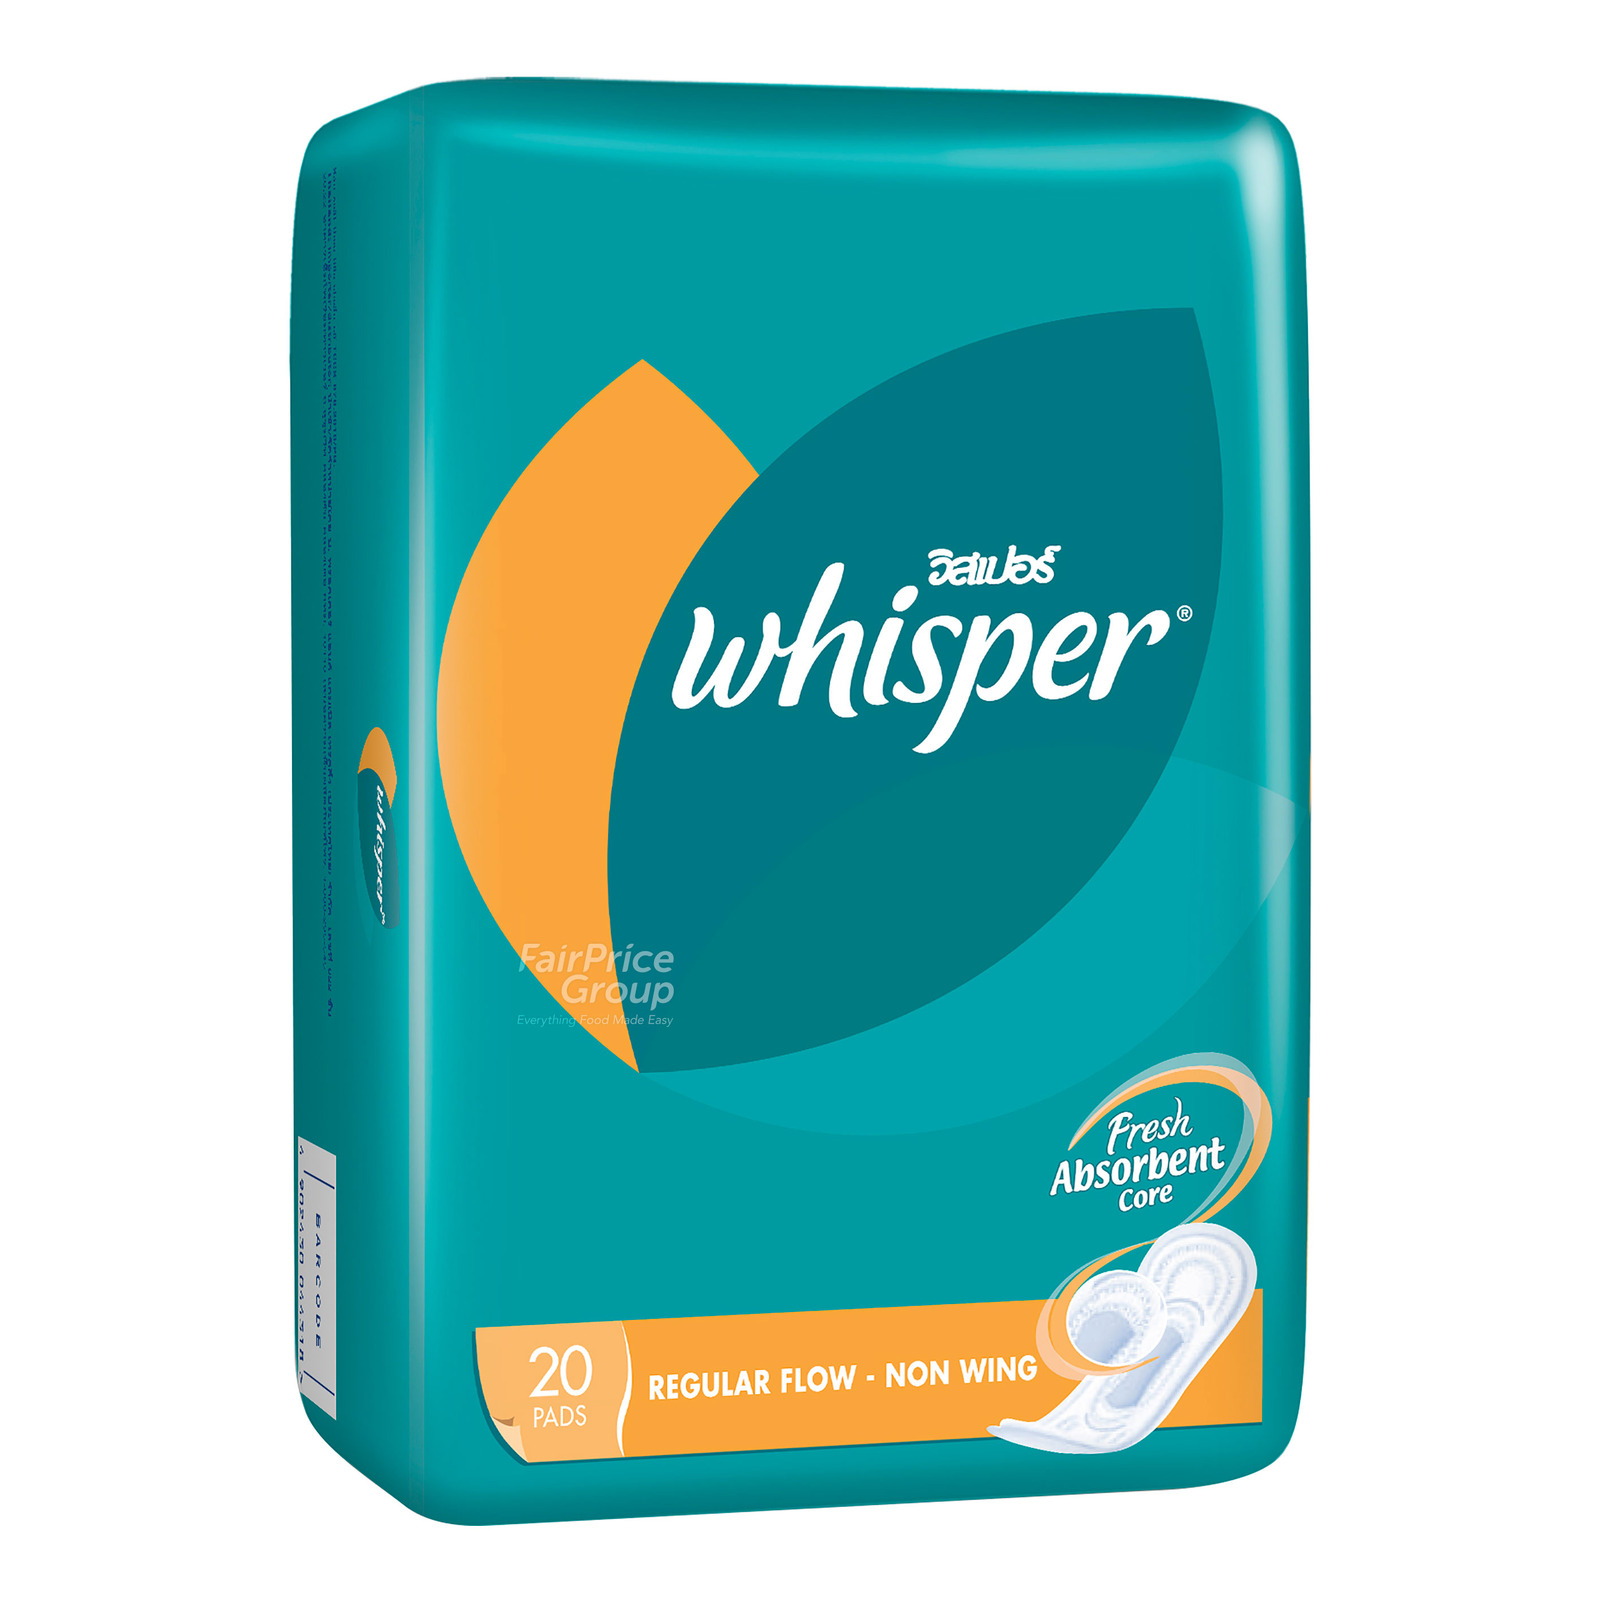 WHISPER fresh absorbent core regular flow non wing sanitary pads 20pads